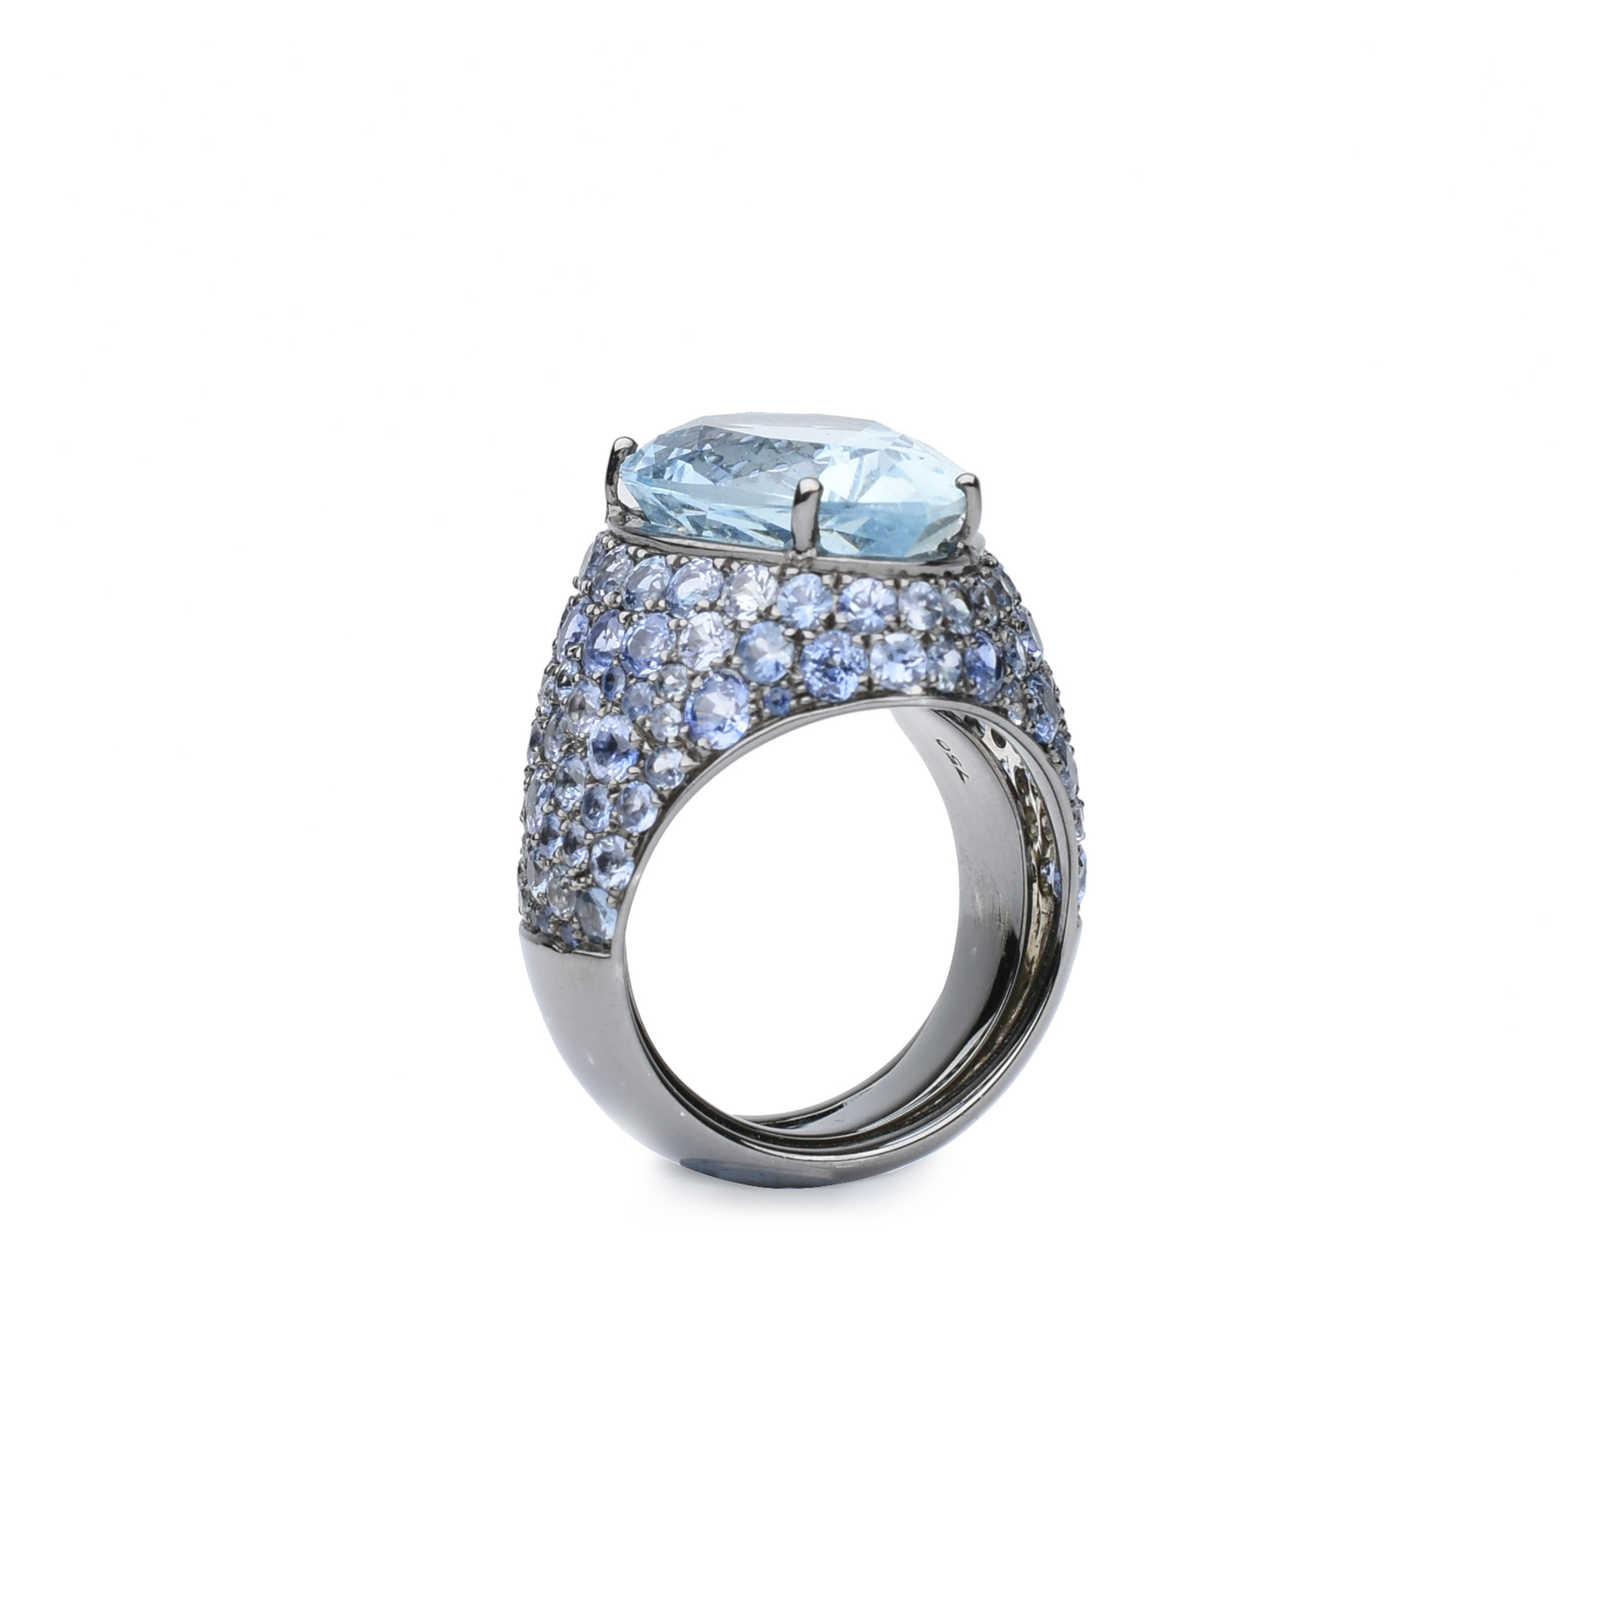 id carat rings sale sapphire diamond cocktail ring jewelry for at l aquamarine platinum j